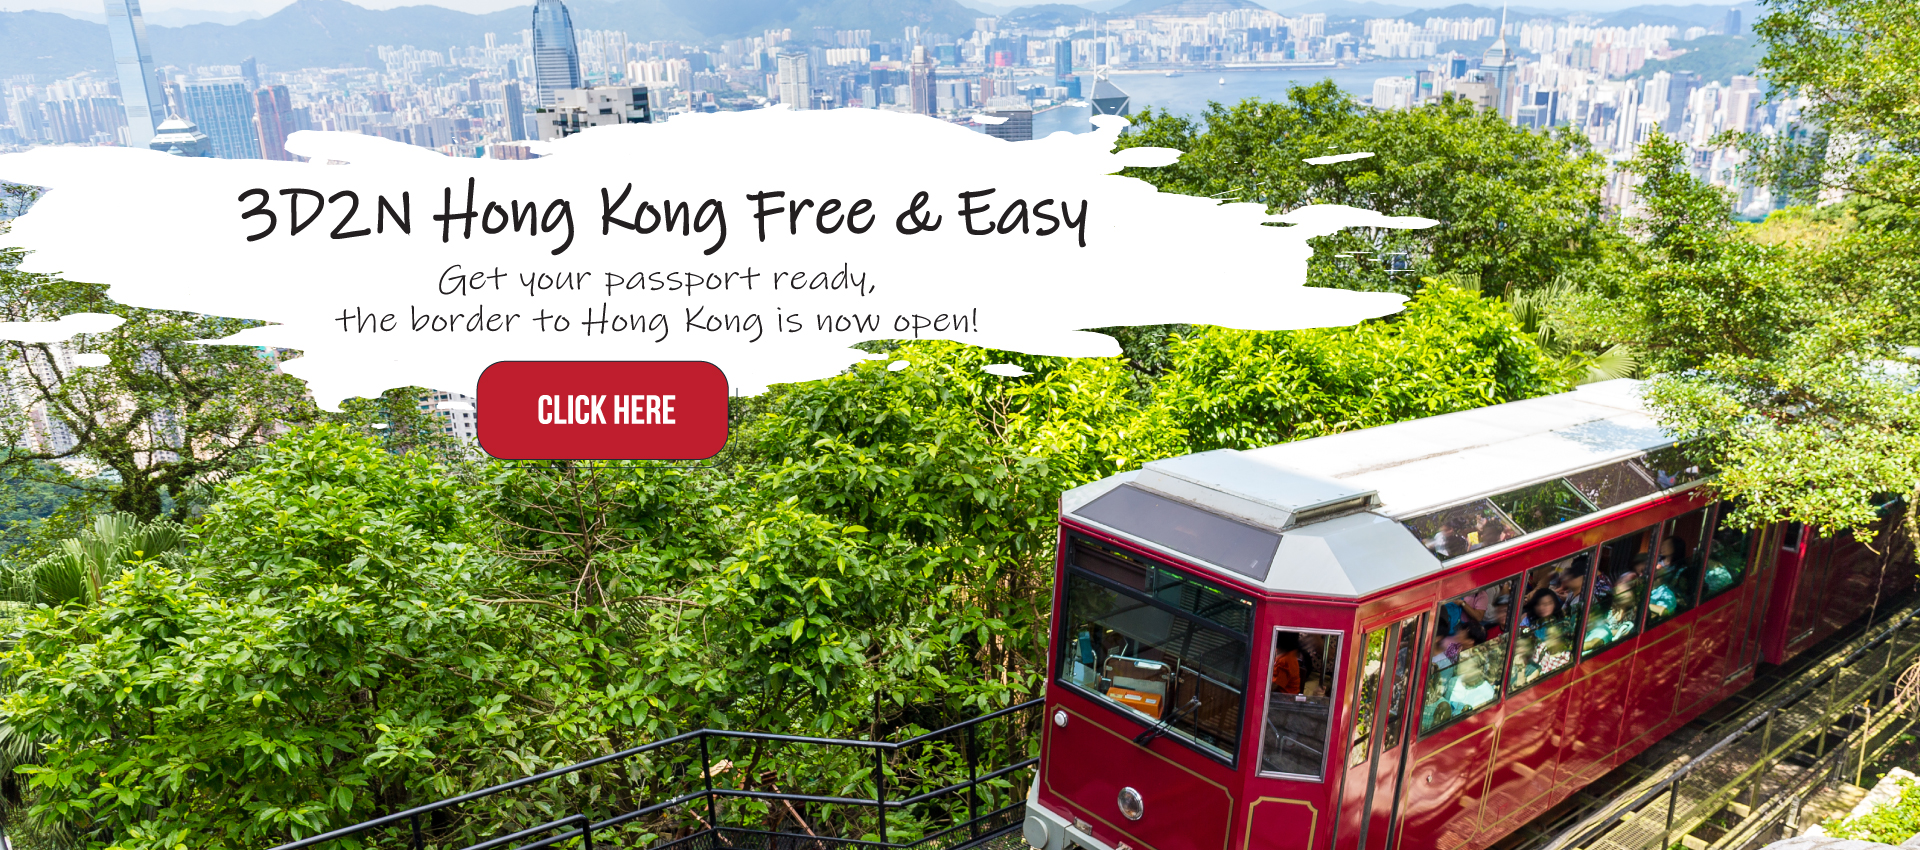 Hong Kong Free & Easy